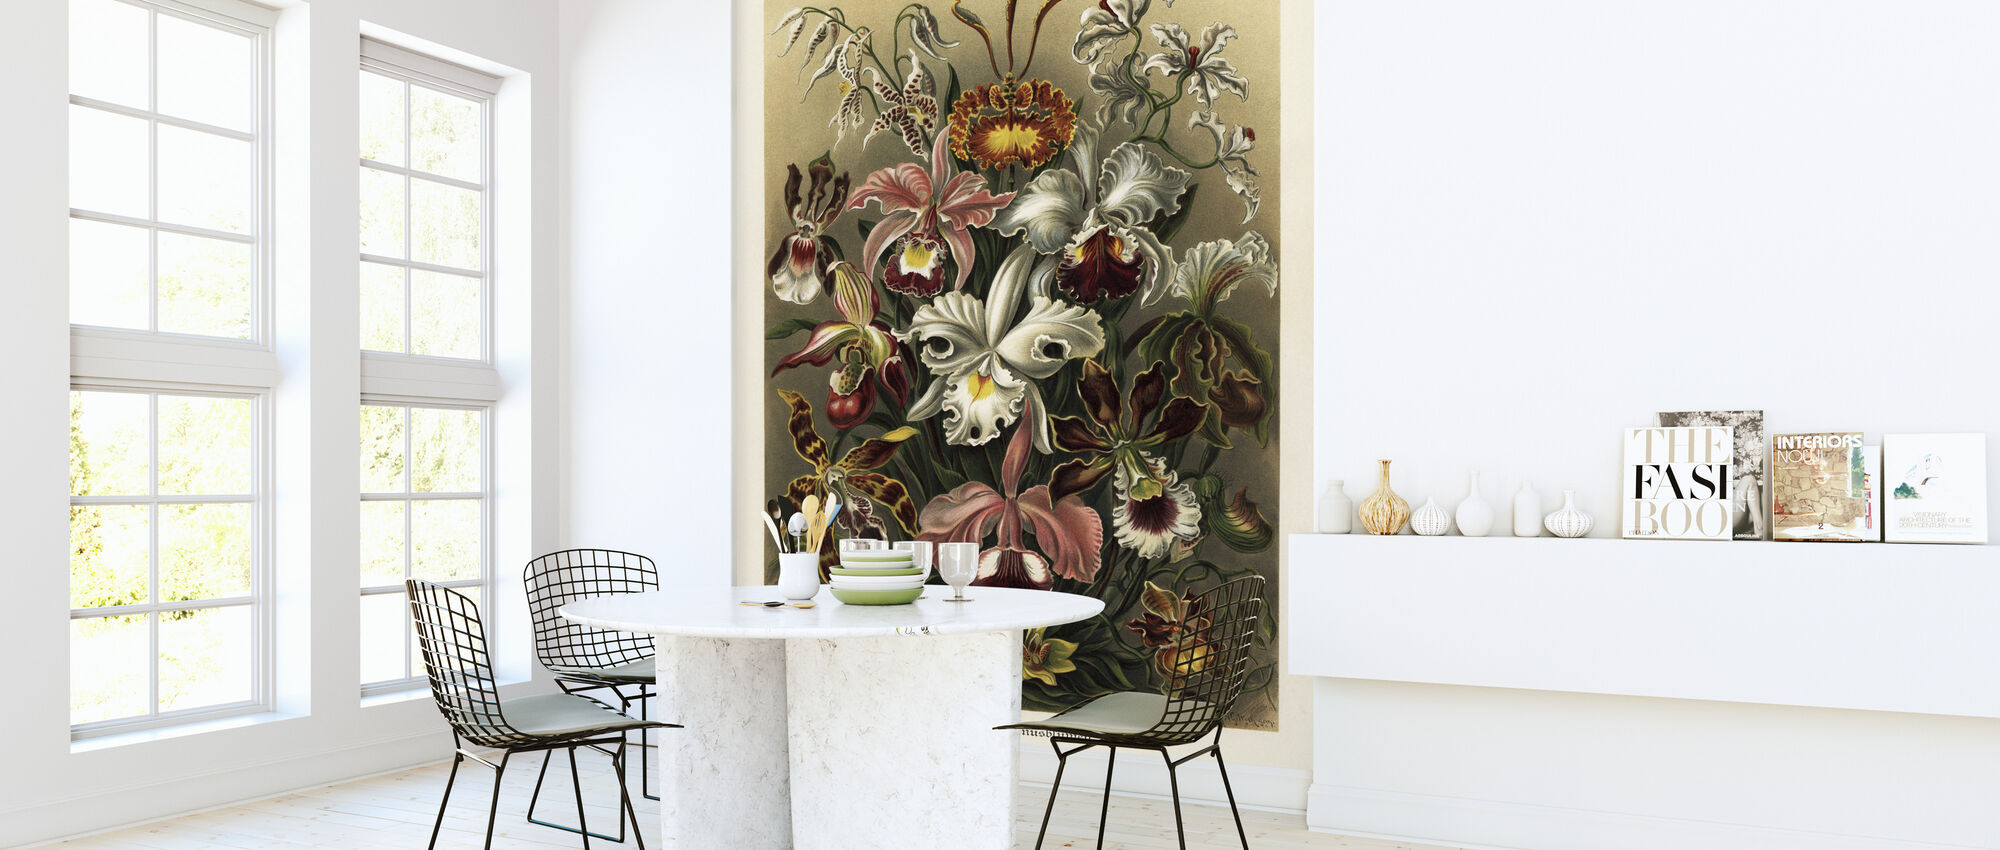 Art Forms in Nature - Ernst Haeckel - Wallpaper - Kitchen